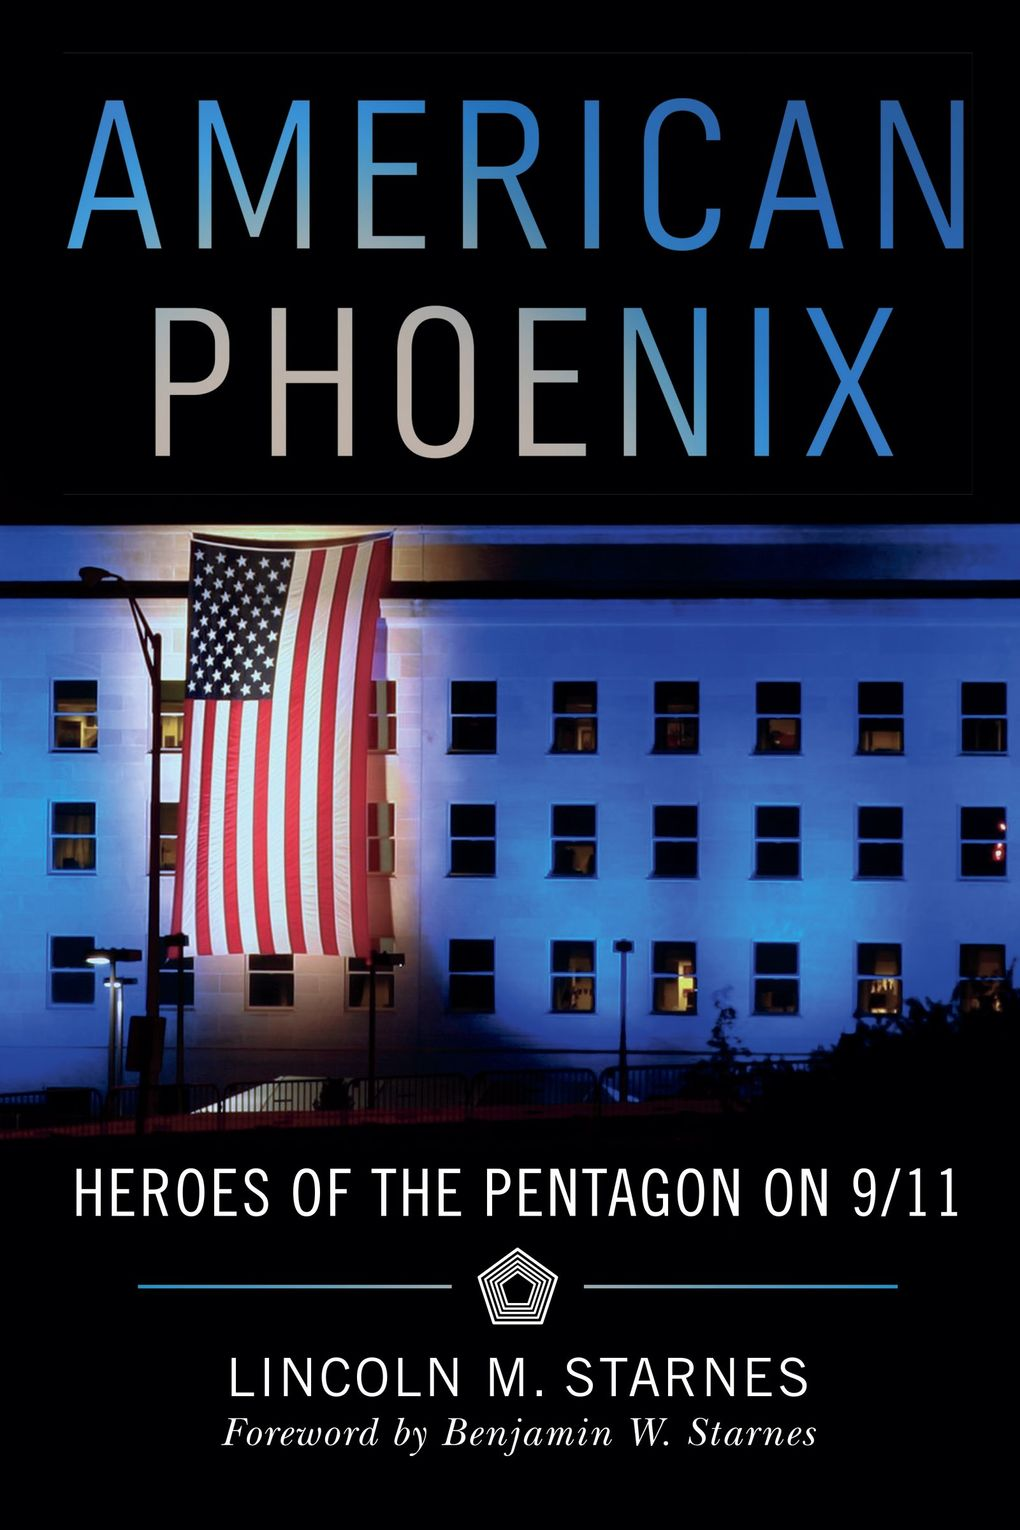 """""""American Phoenix: Heroes of the Pentagon on 9/11"""" by Lincoln M. Starnes, foreword by Benjamin W. Starnes. (Girl Friday Books)"""